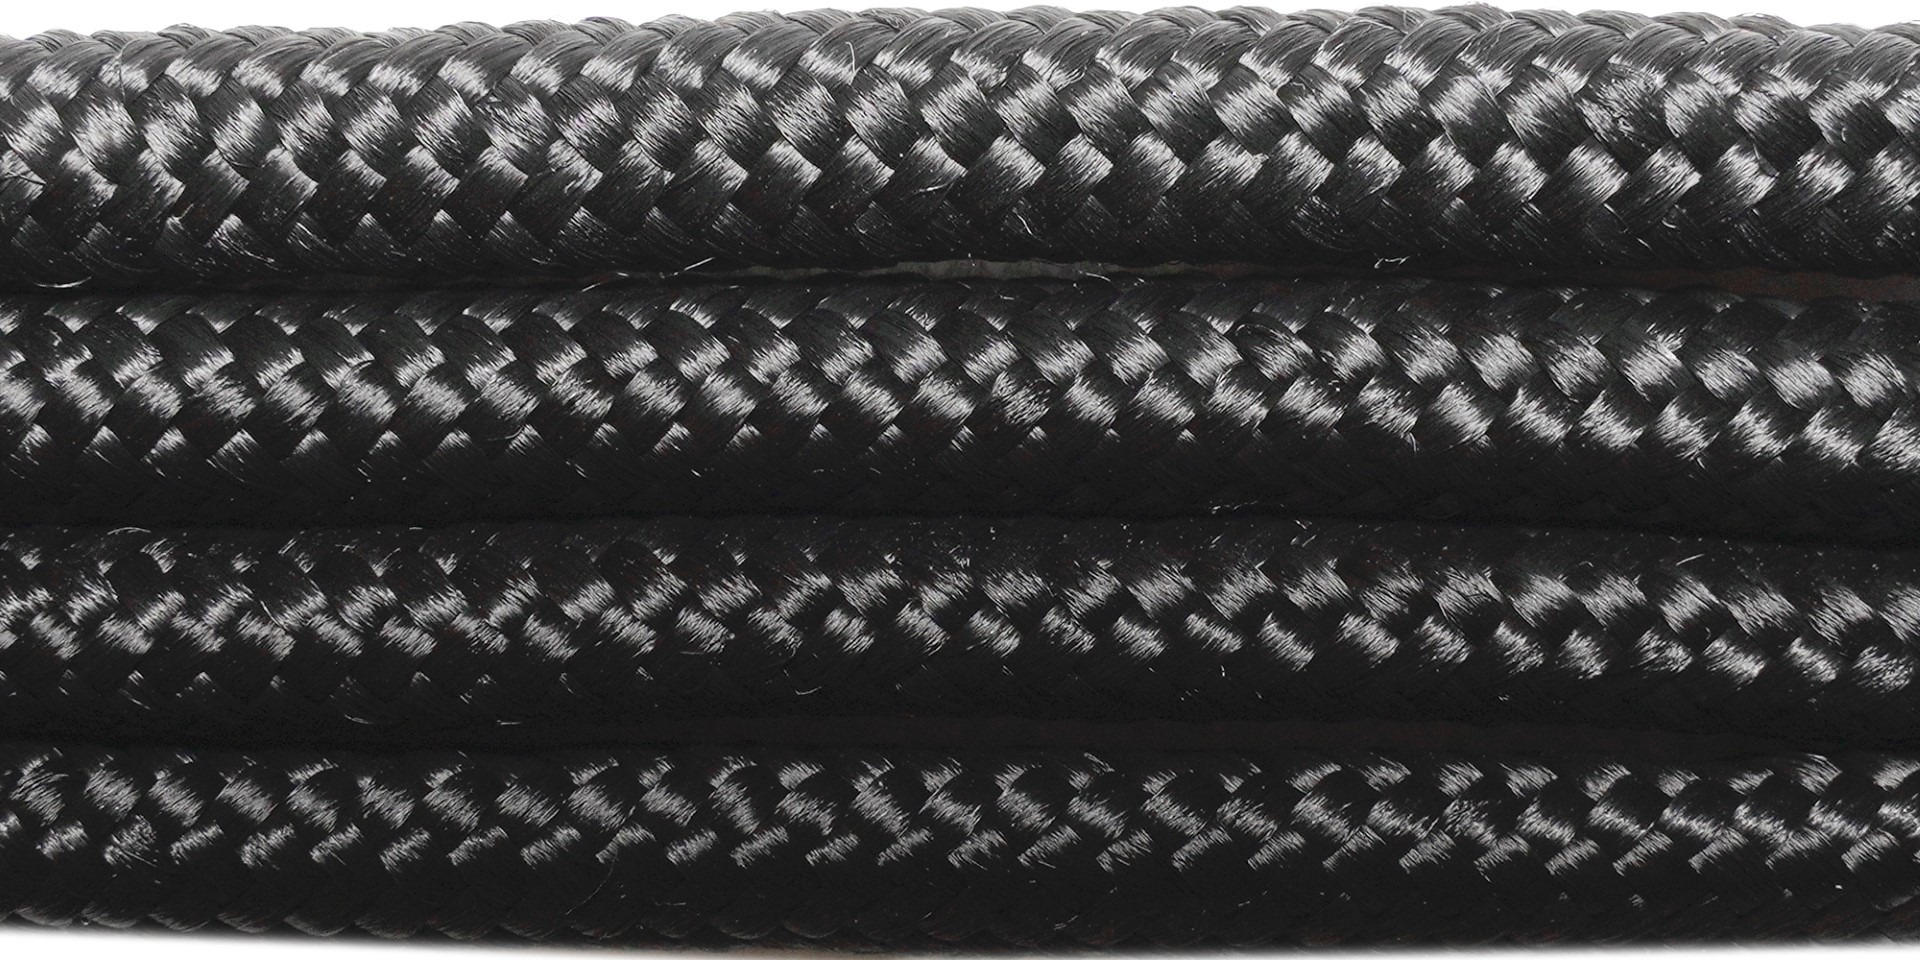 PBC8 black polypropylene 8mm braided cord